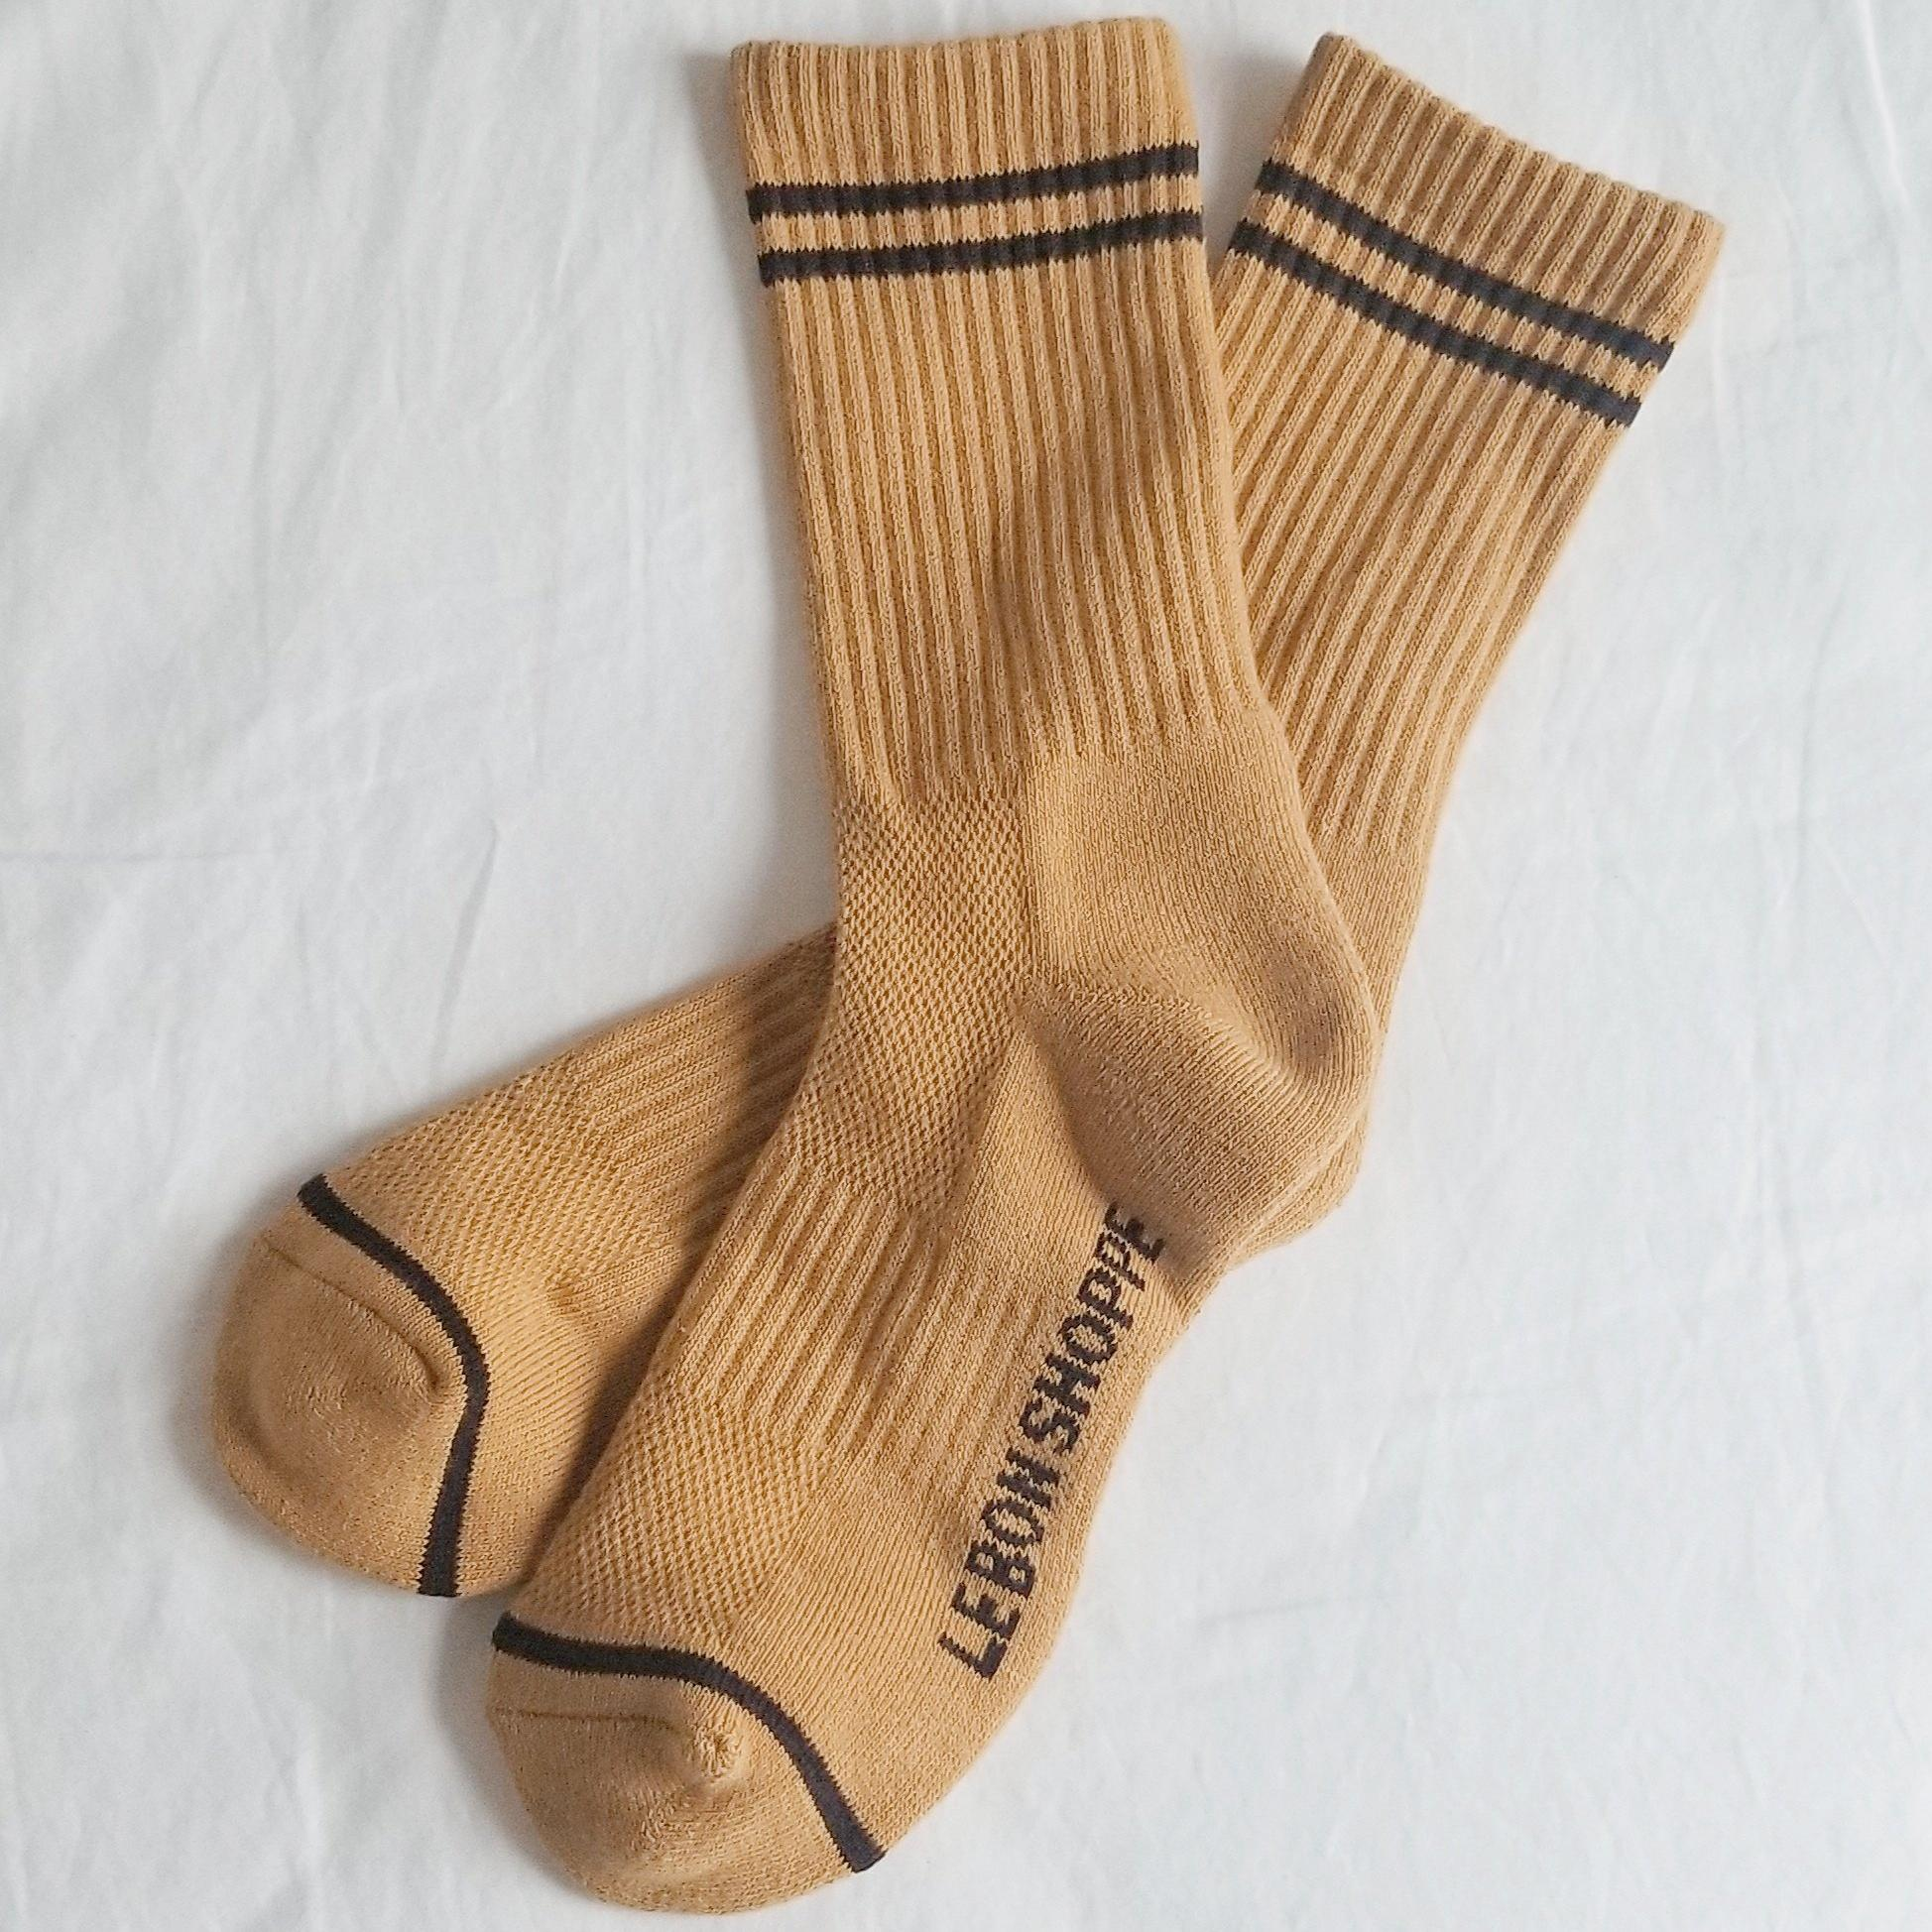 Le Bon Shoppe Boyfriend Socks in Biscotti. Available at EASE Toronto.